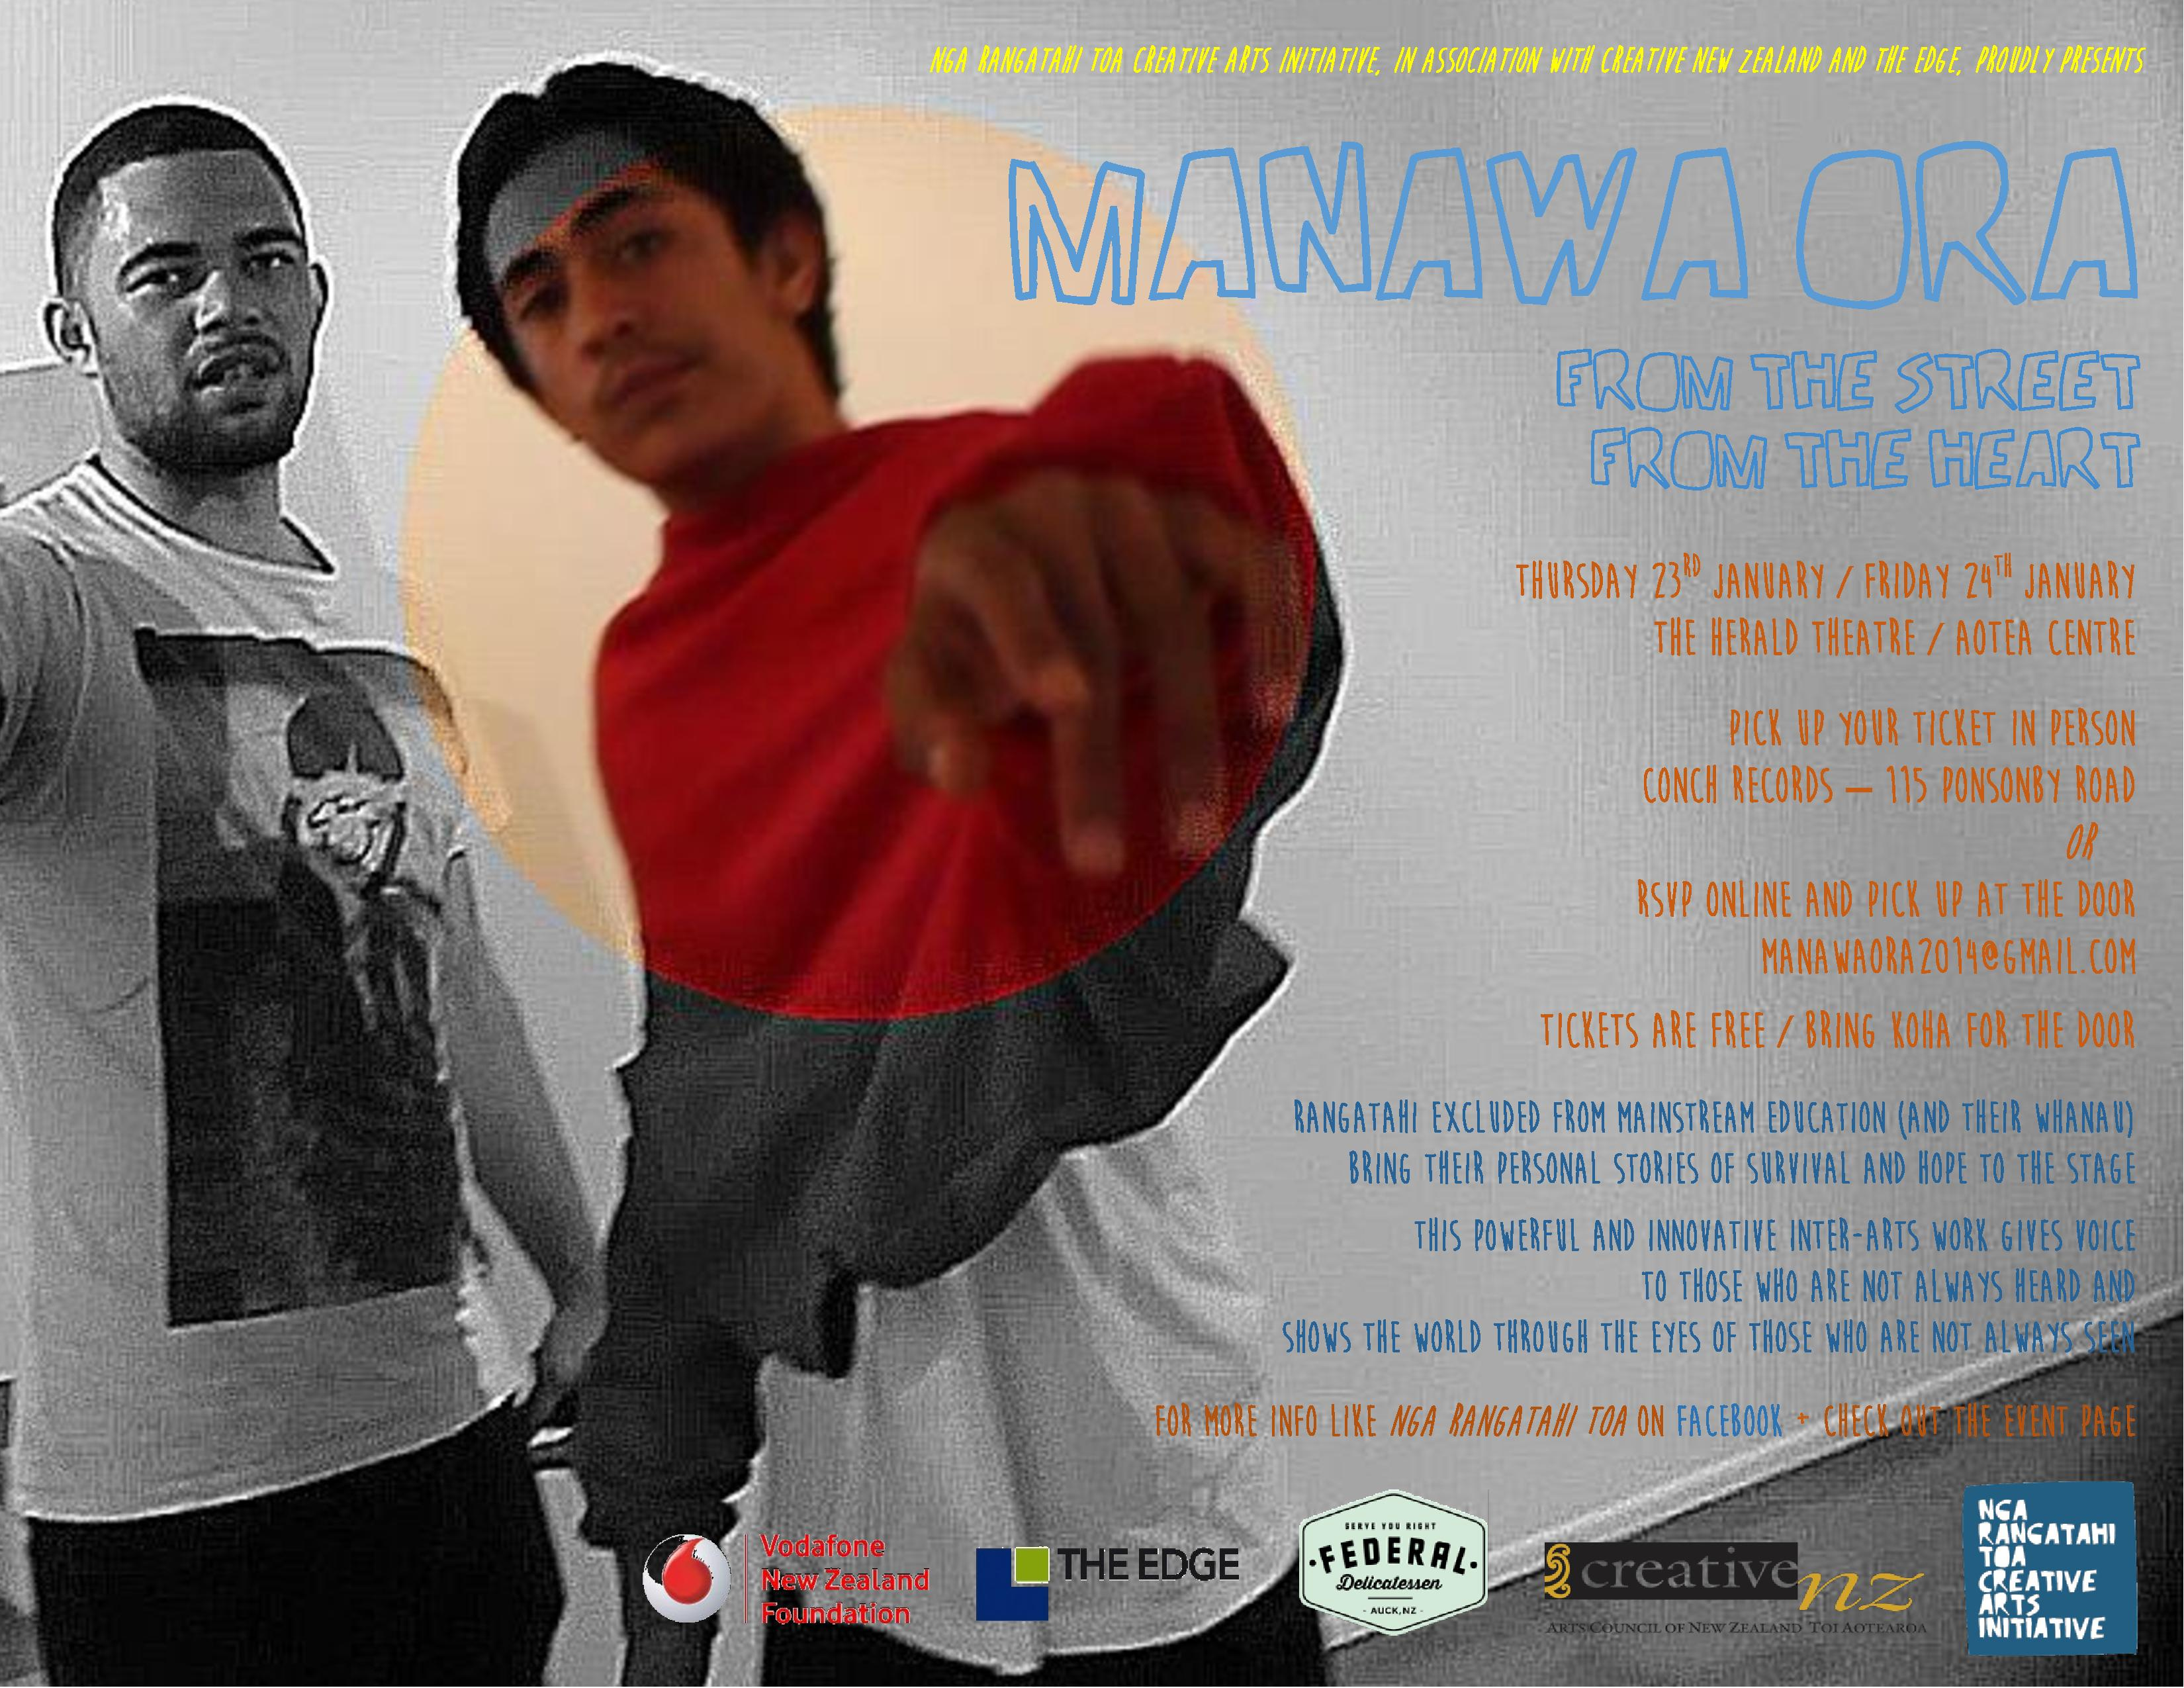 Poster promoting Manawa Ora